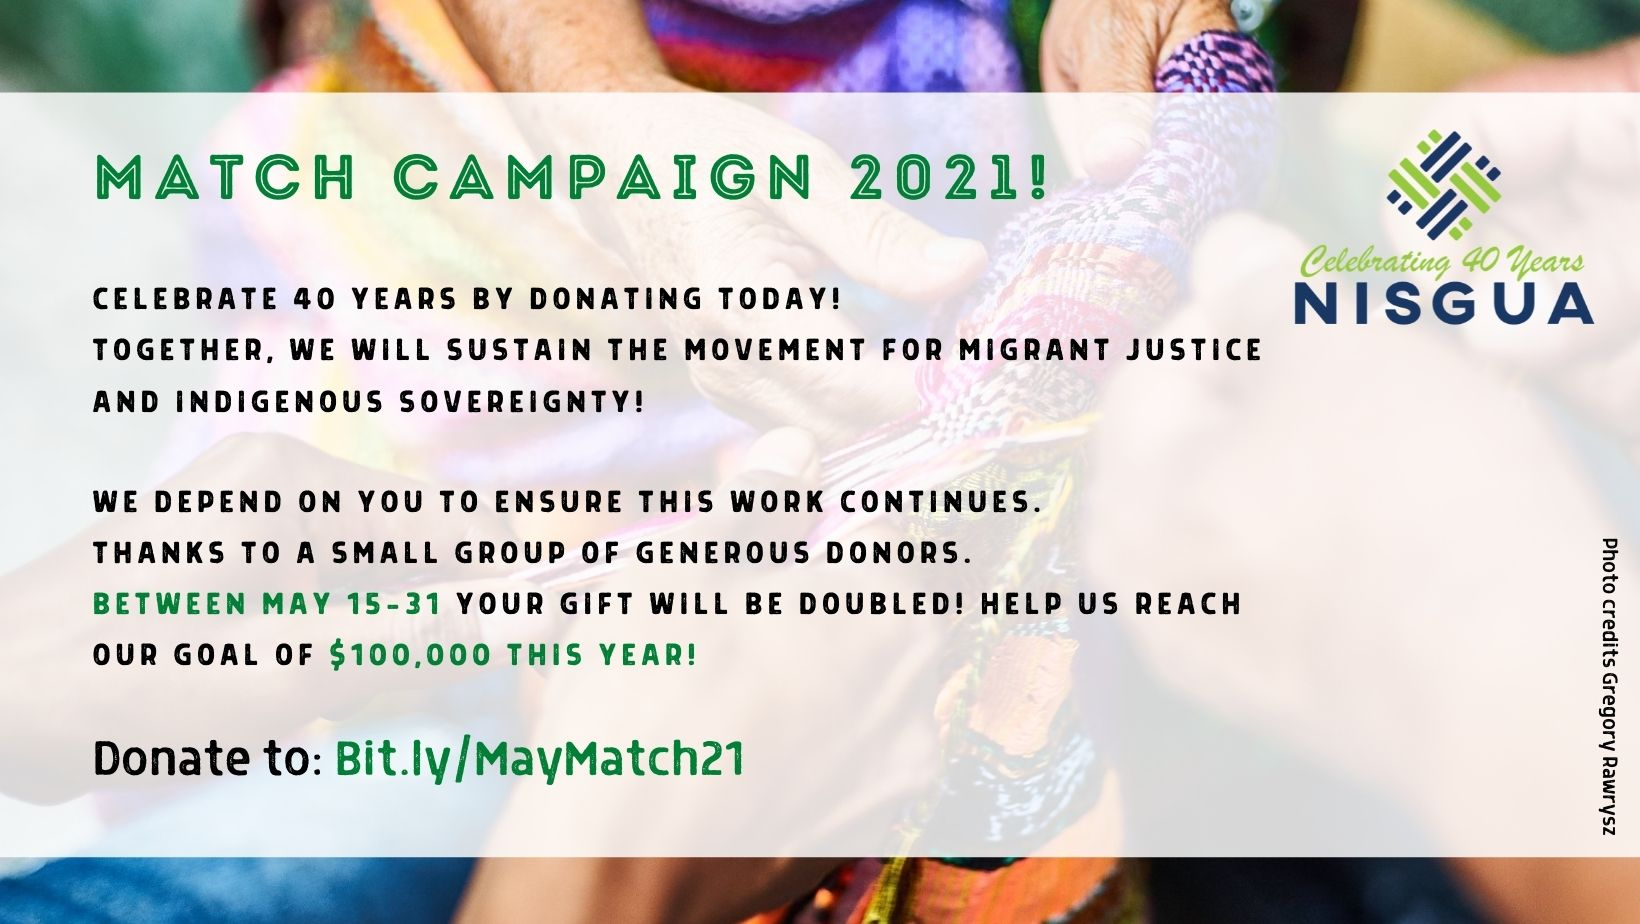 Image with text with a background picture of four hands holding a weave with vibrant colors. Text on the flyer: match campaign 2021! Celebrate 40 years by donating today! Together, we will sustain the movement for migrant justice and Indigenous sovereignty! We depend on you to ensure this work continues. Thanks to a small group of generous donors. between May 15-31 your gift will be doubled! Help us reach our goal of $100,000 this year!